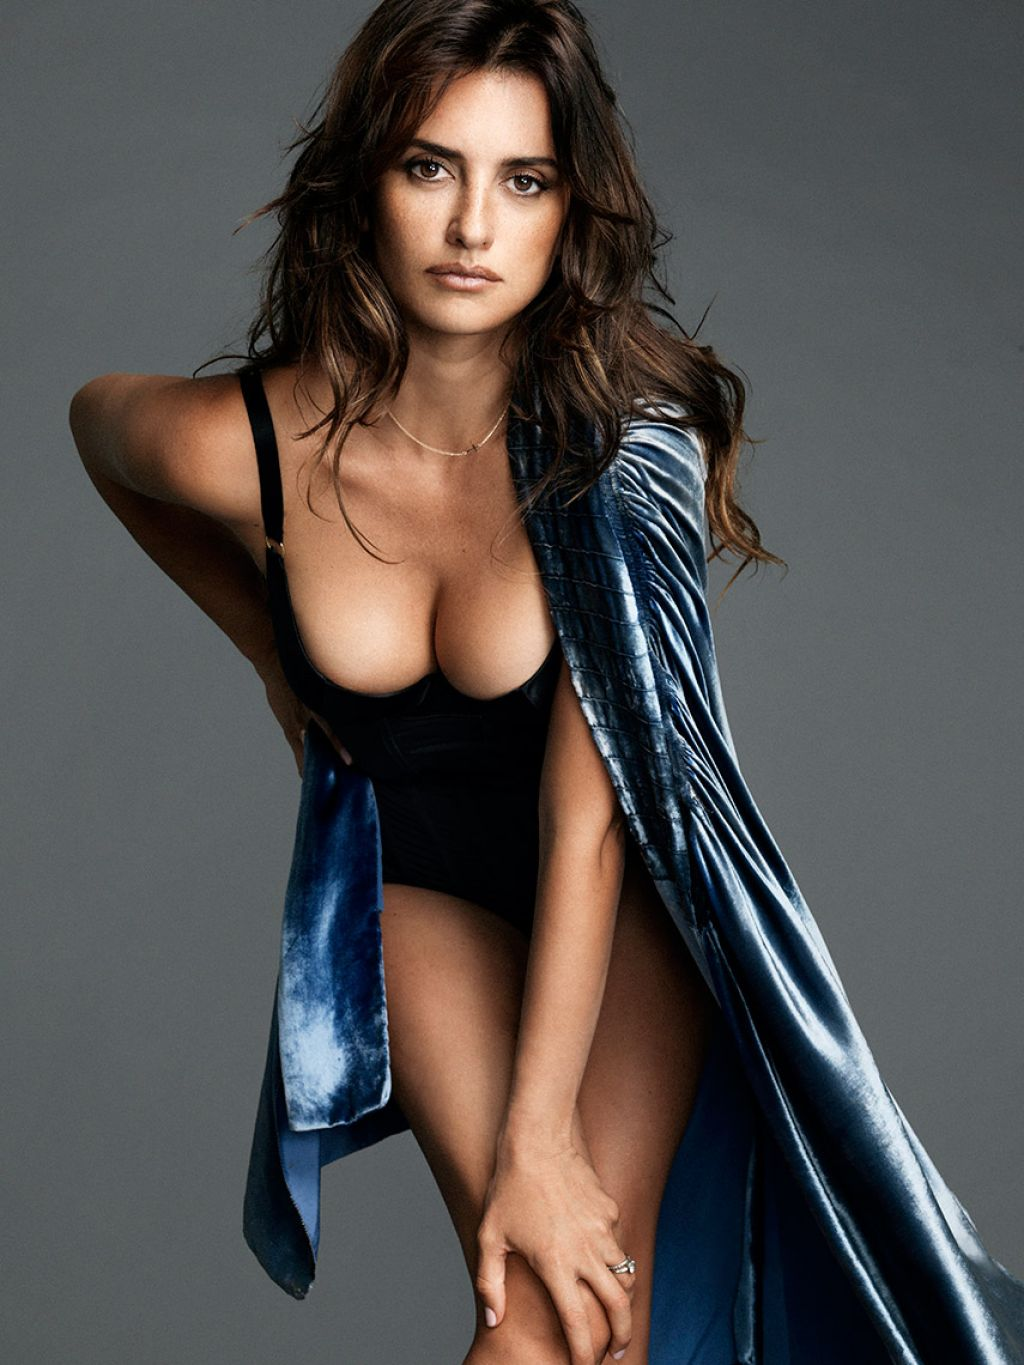 Penelope Cruz - Photoshoot for Esquire Magazine November 2014